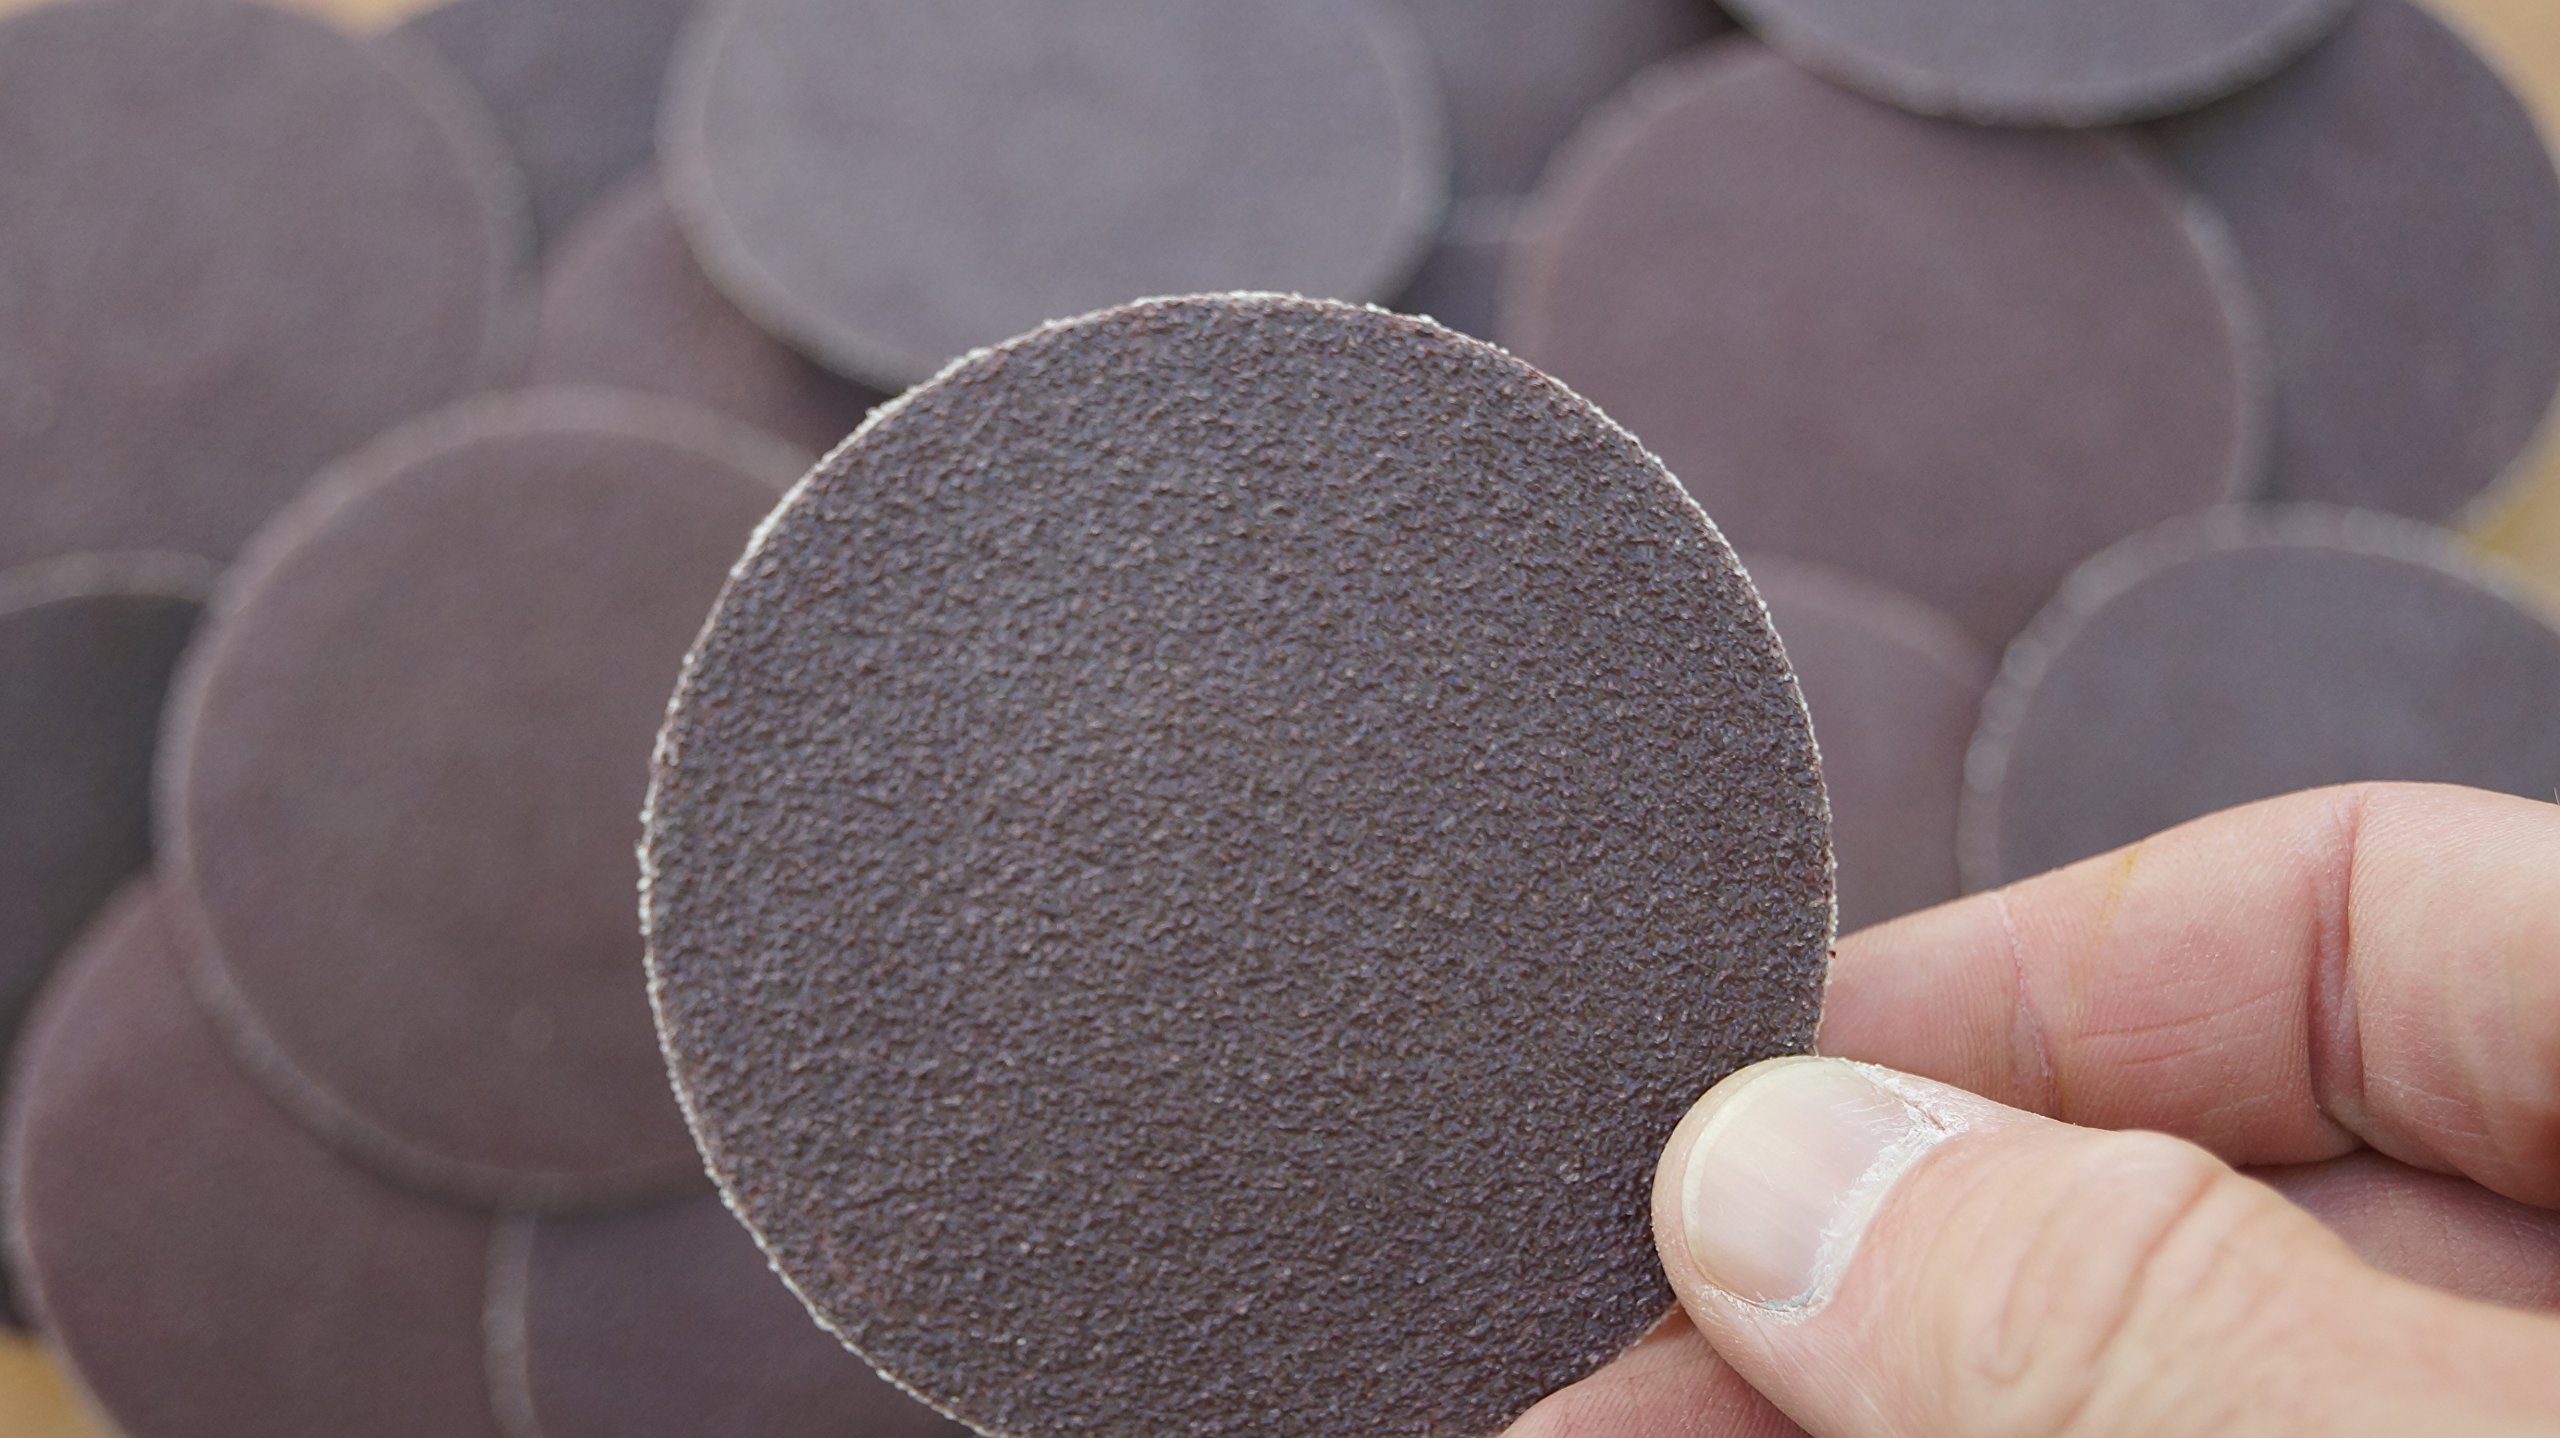 25pc 3'' Roloc Discs 80 Grit R Type Sanding Abrasive Roll Lock Medium Coarse Grain by IIT (Image #3)